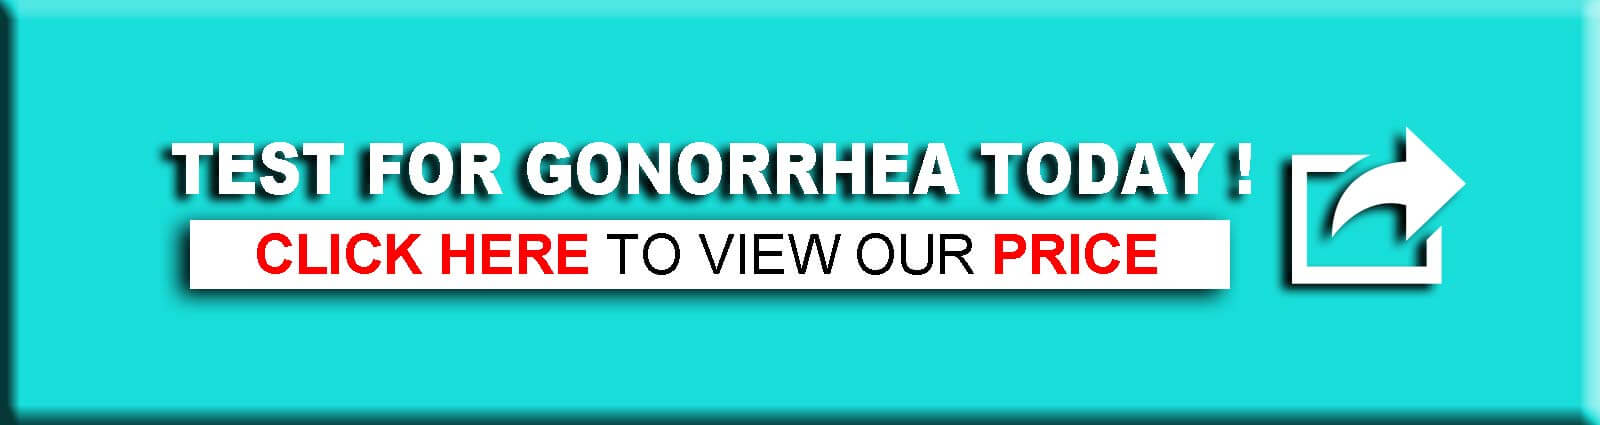 GONORRHEA TEST PACKAGES AND PRICE